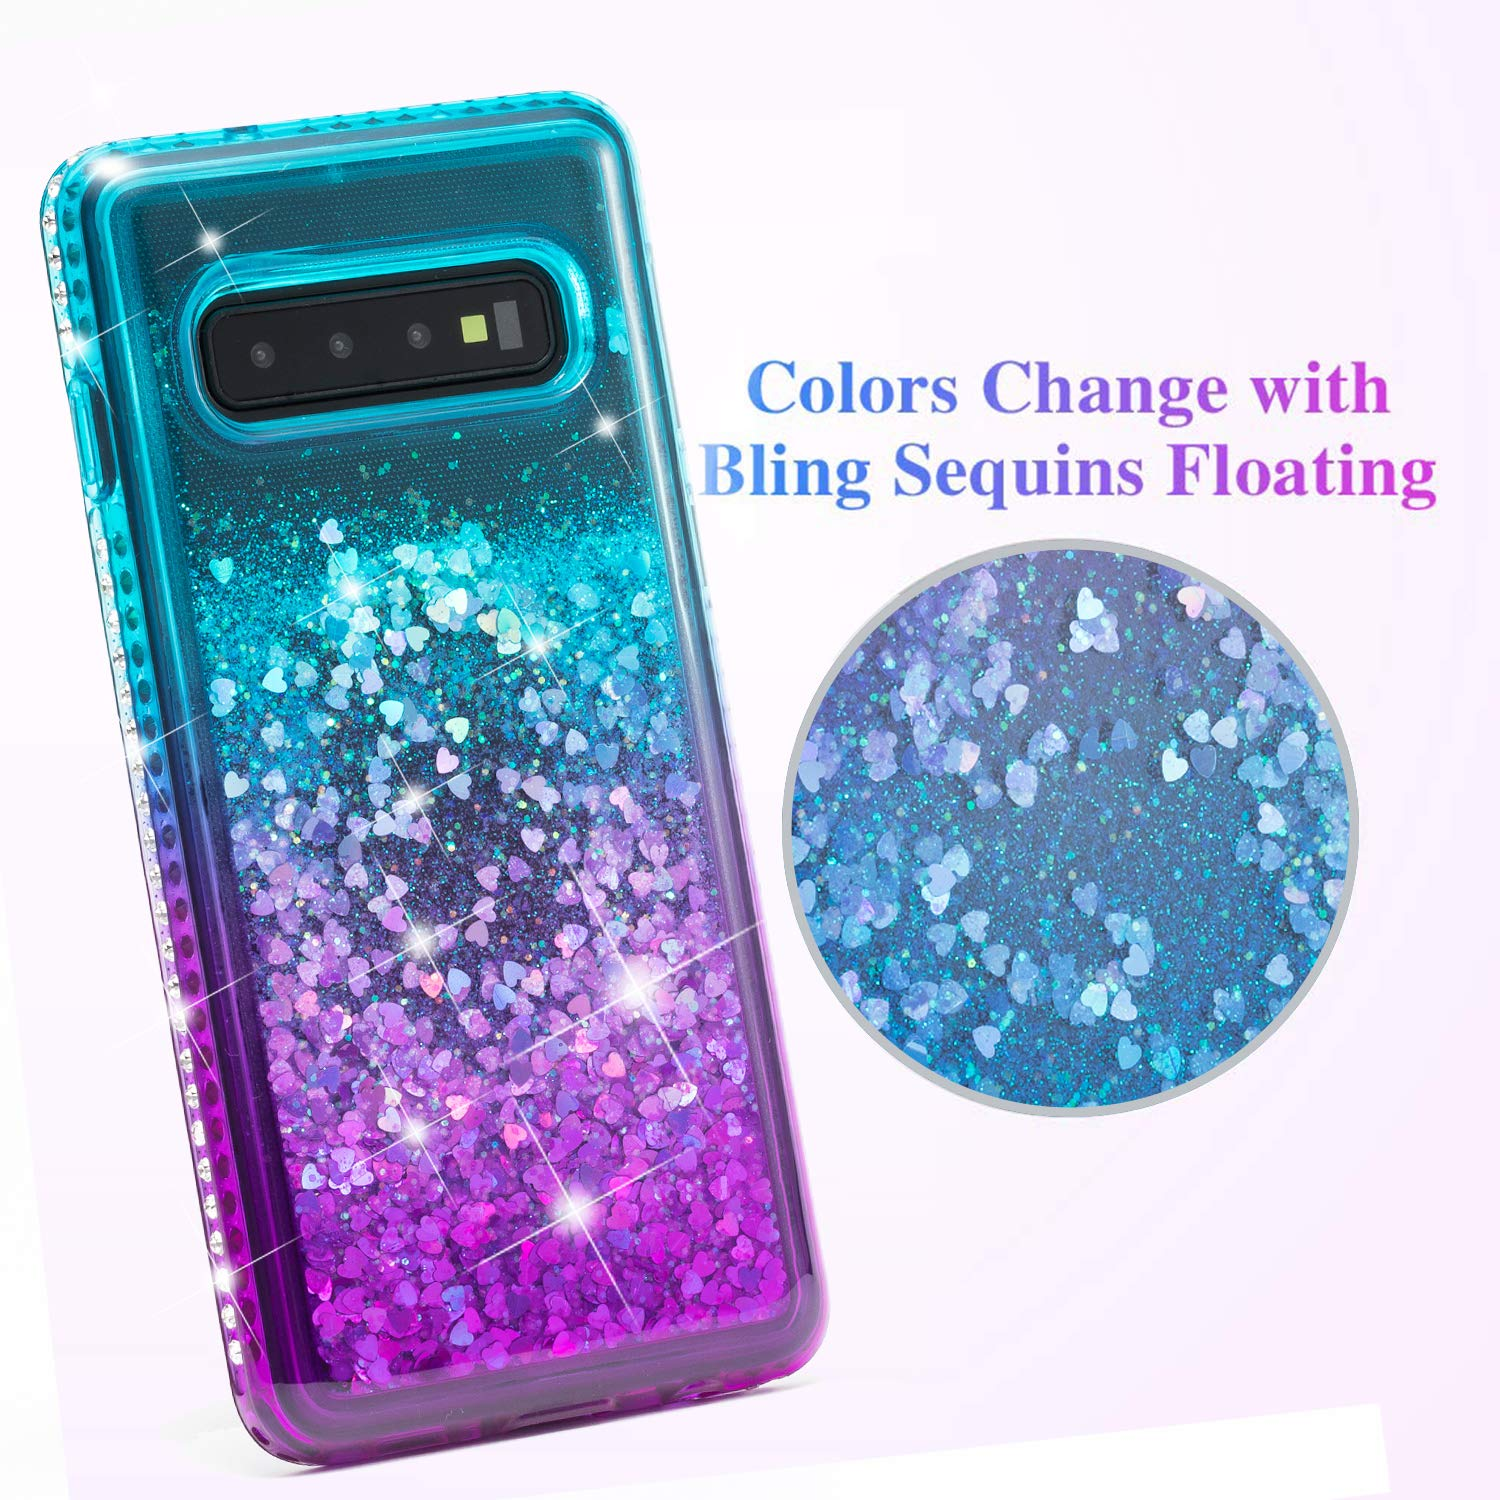 Galaxy S10 Plus Case, Luxury Floating Glitter Case Sparkle Bling Quicksand Liquid Cover Clear TPU Bumper Cushion Reinforced Corners Girls Women Cute Case for Samsung Galaxy S10 Plus, Green Purple